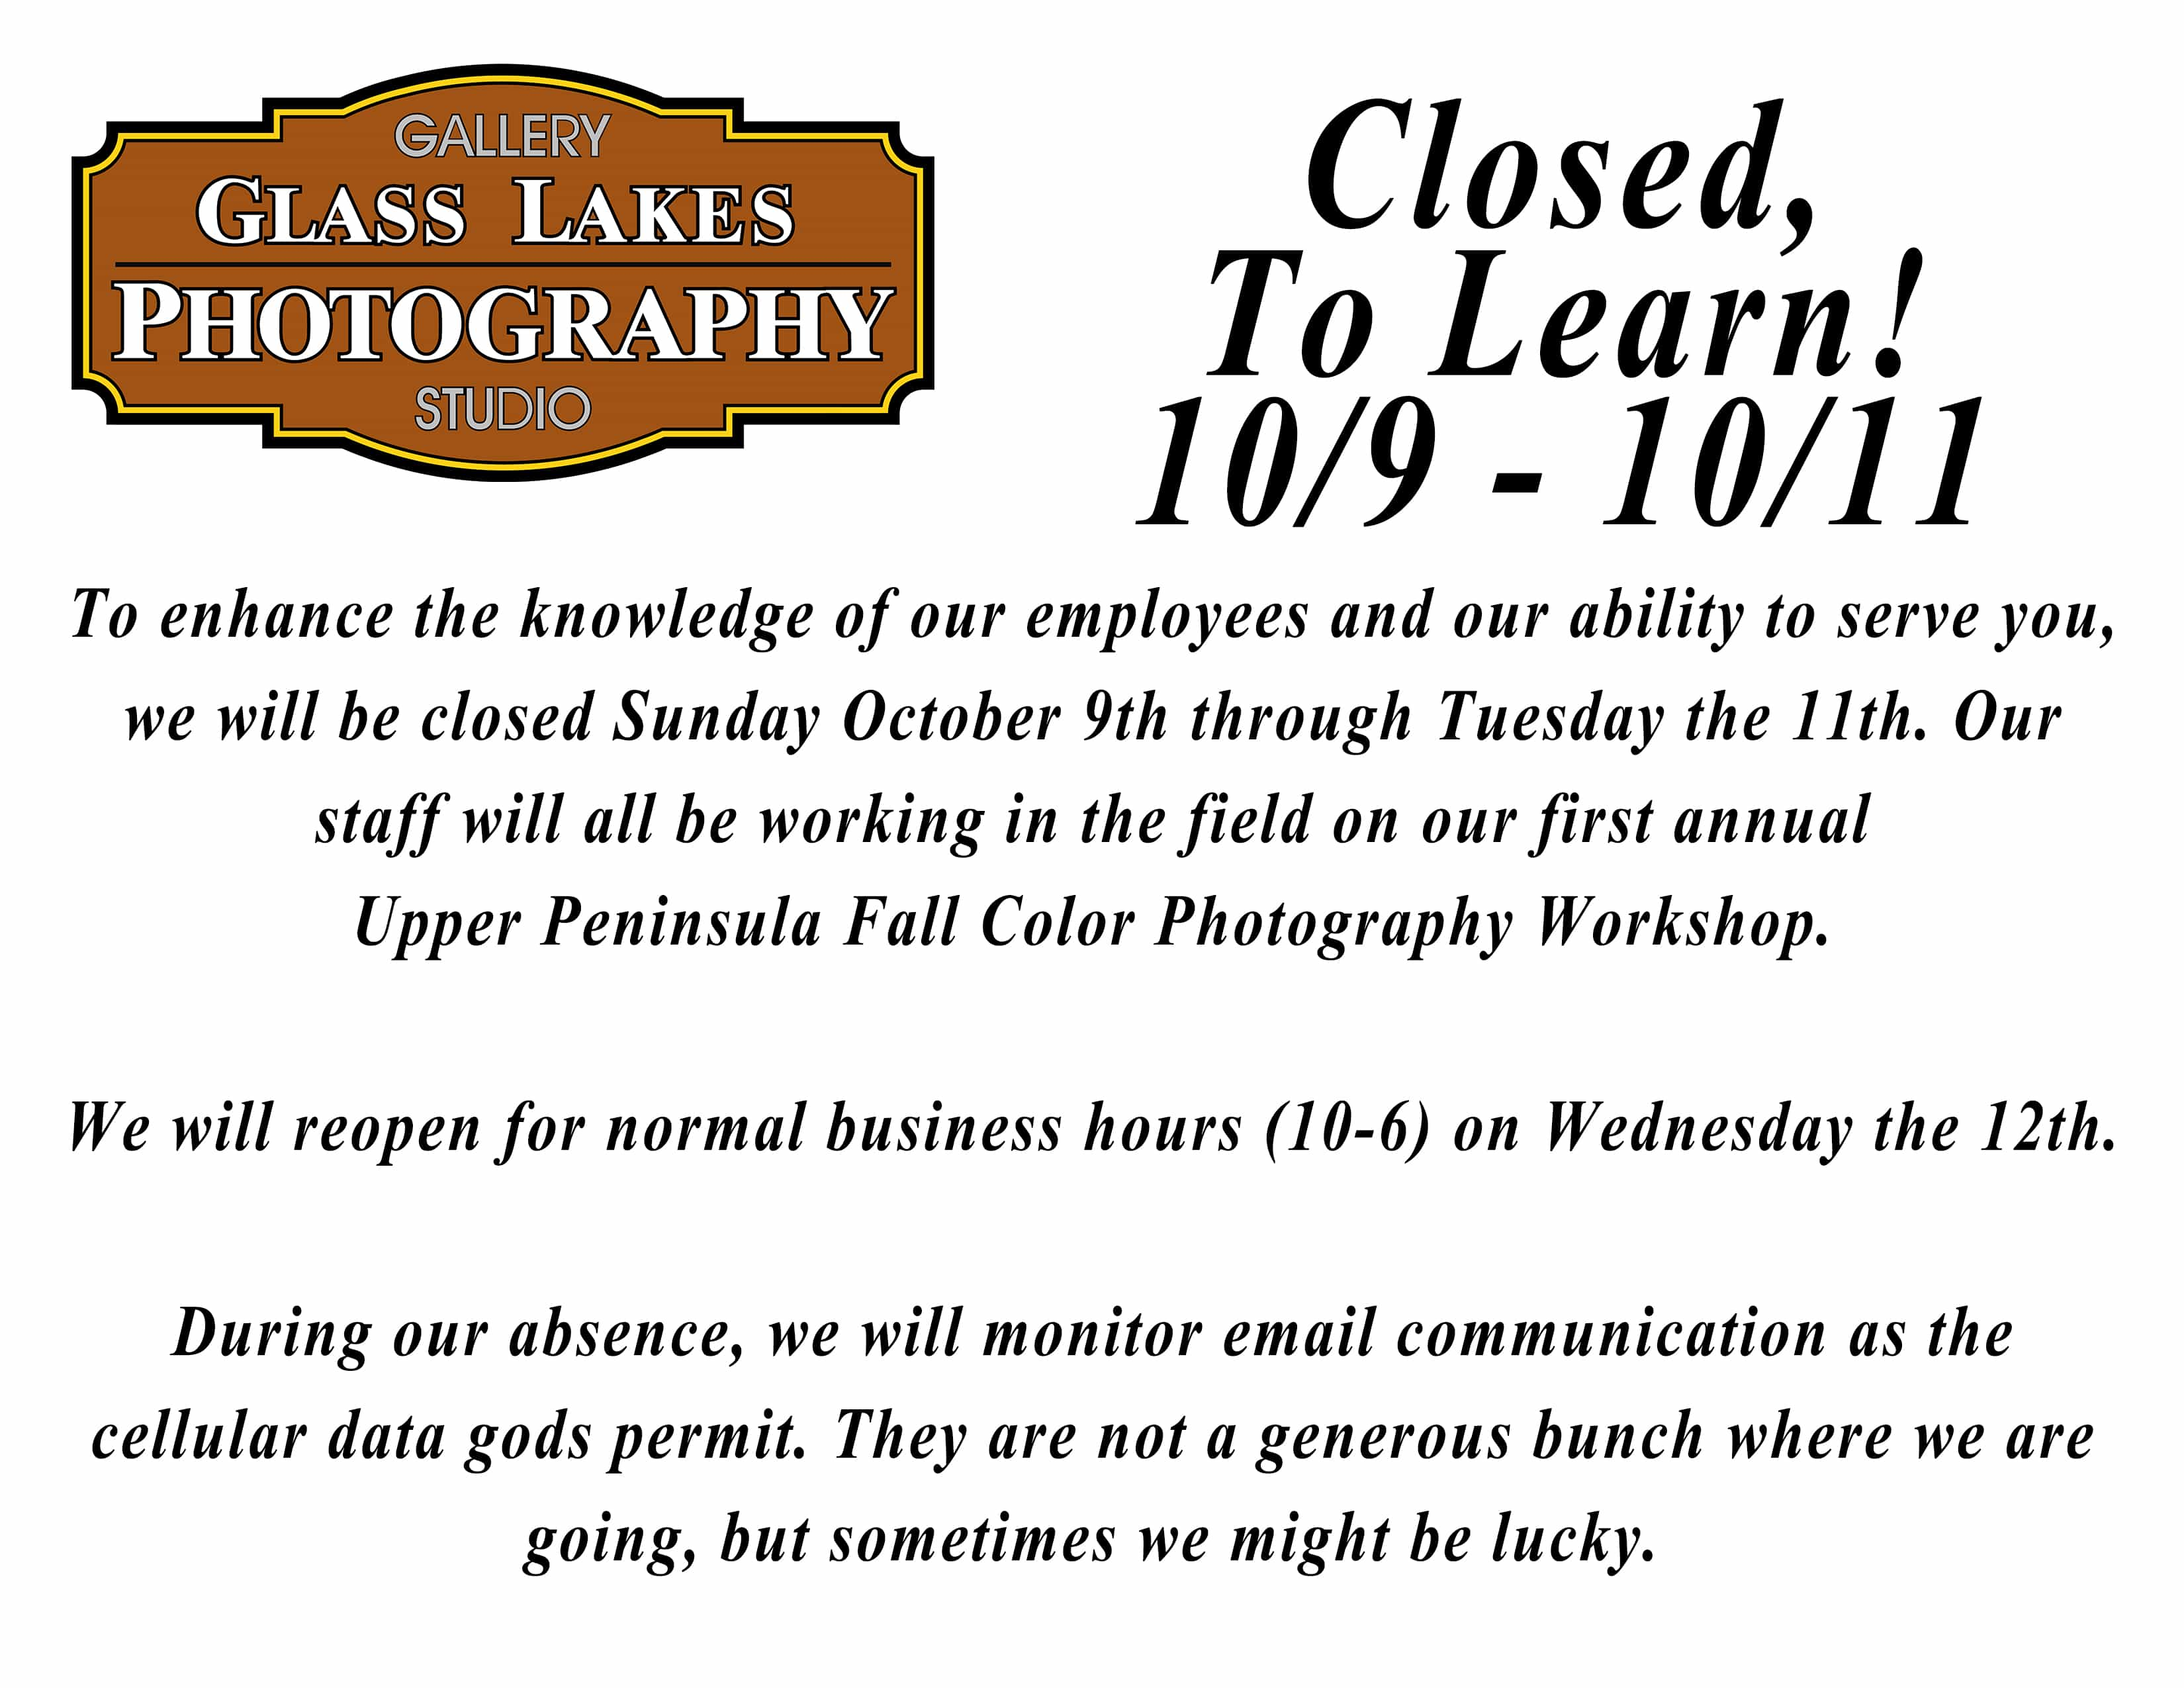 Our Gallery will be closed, for a learning opportunity…